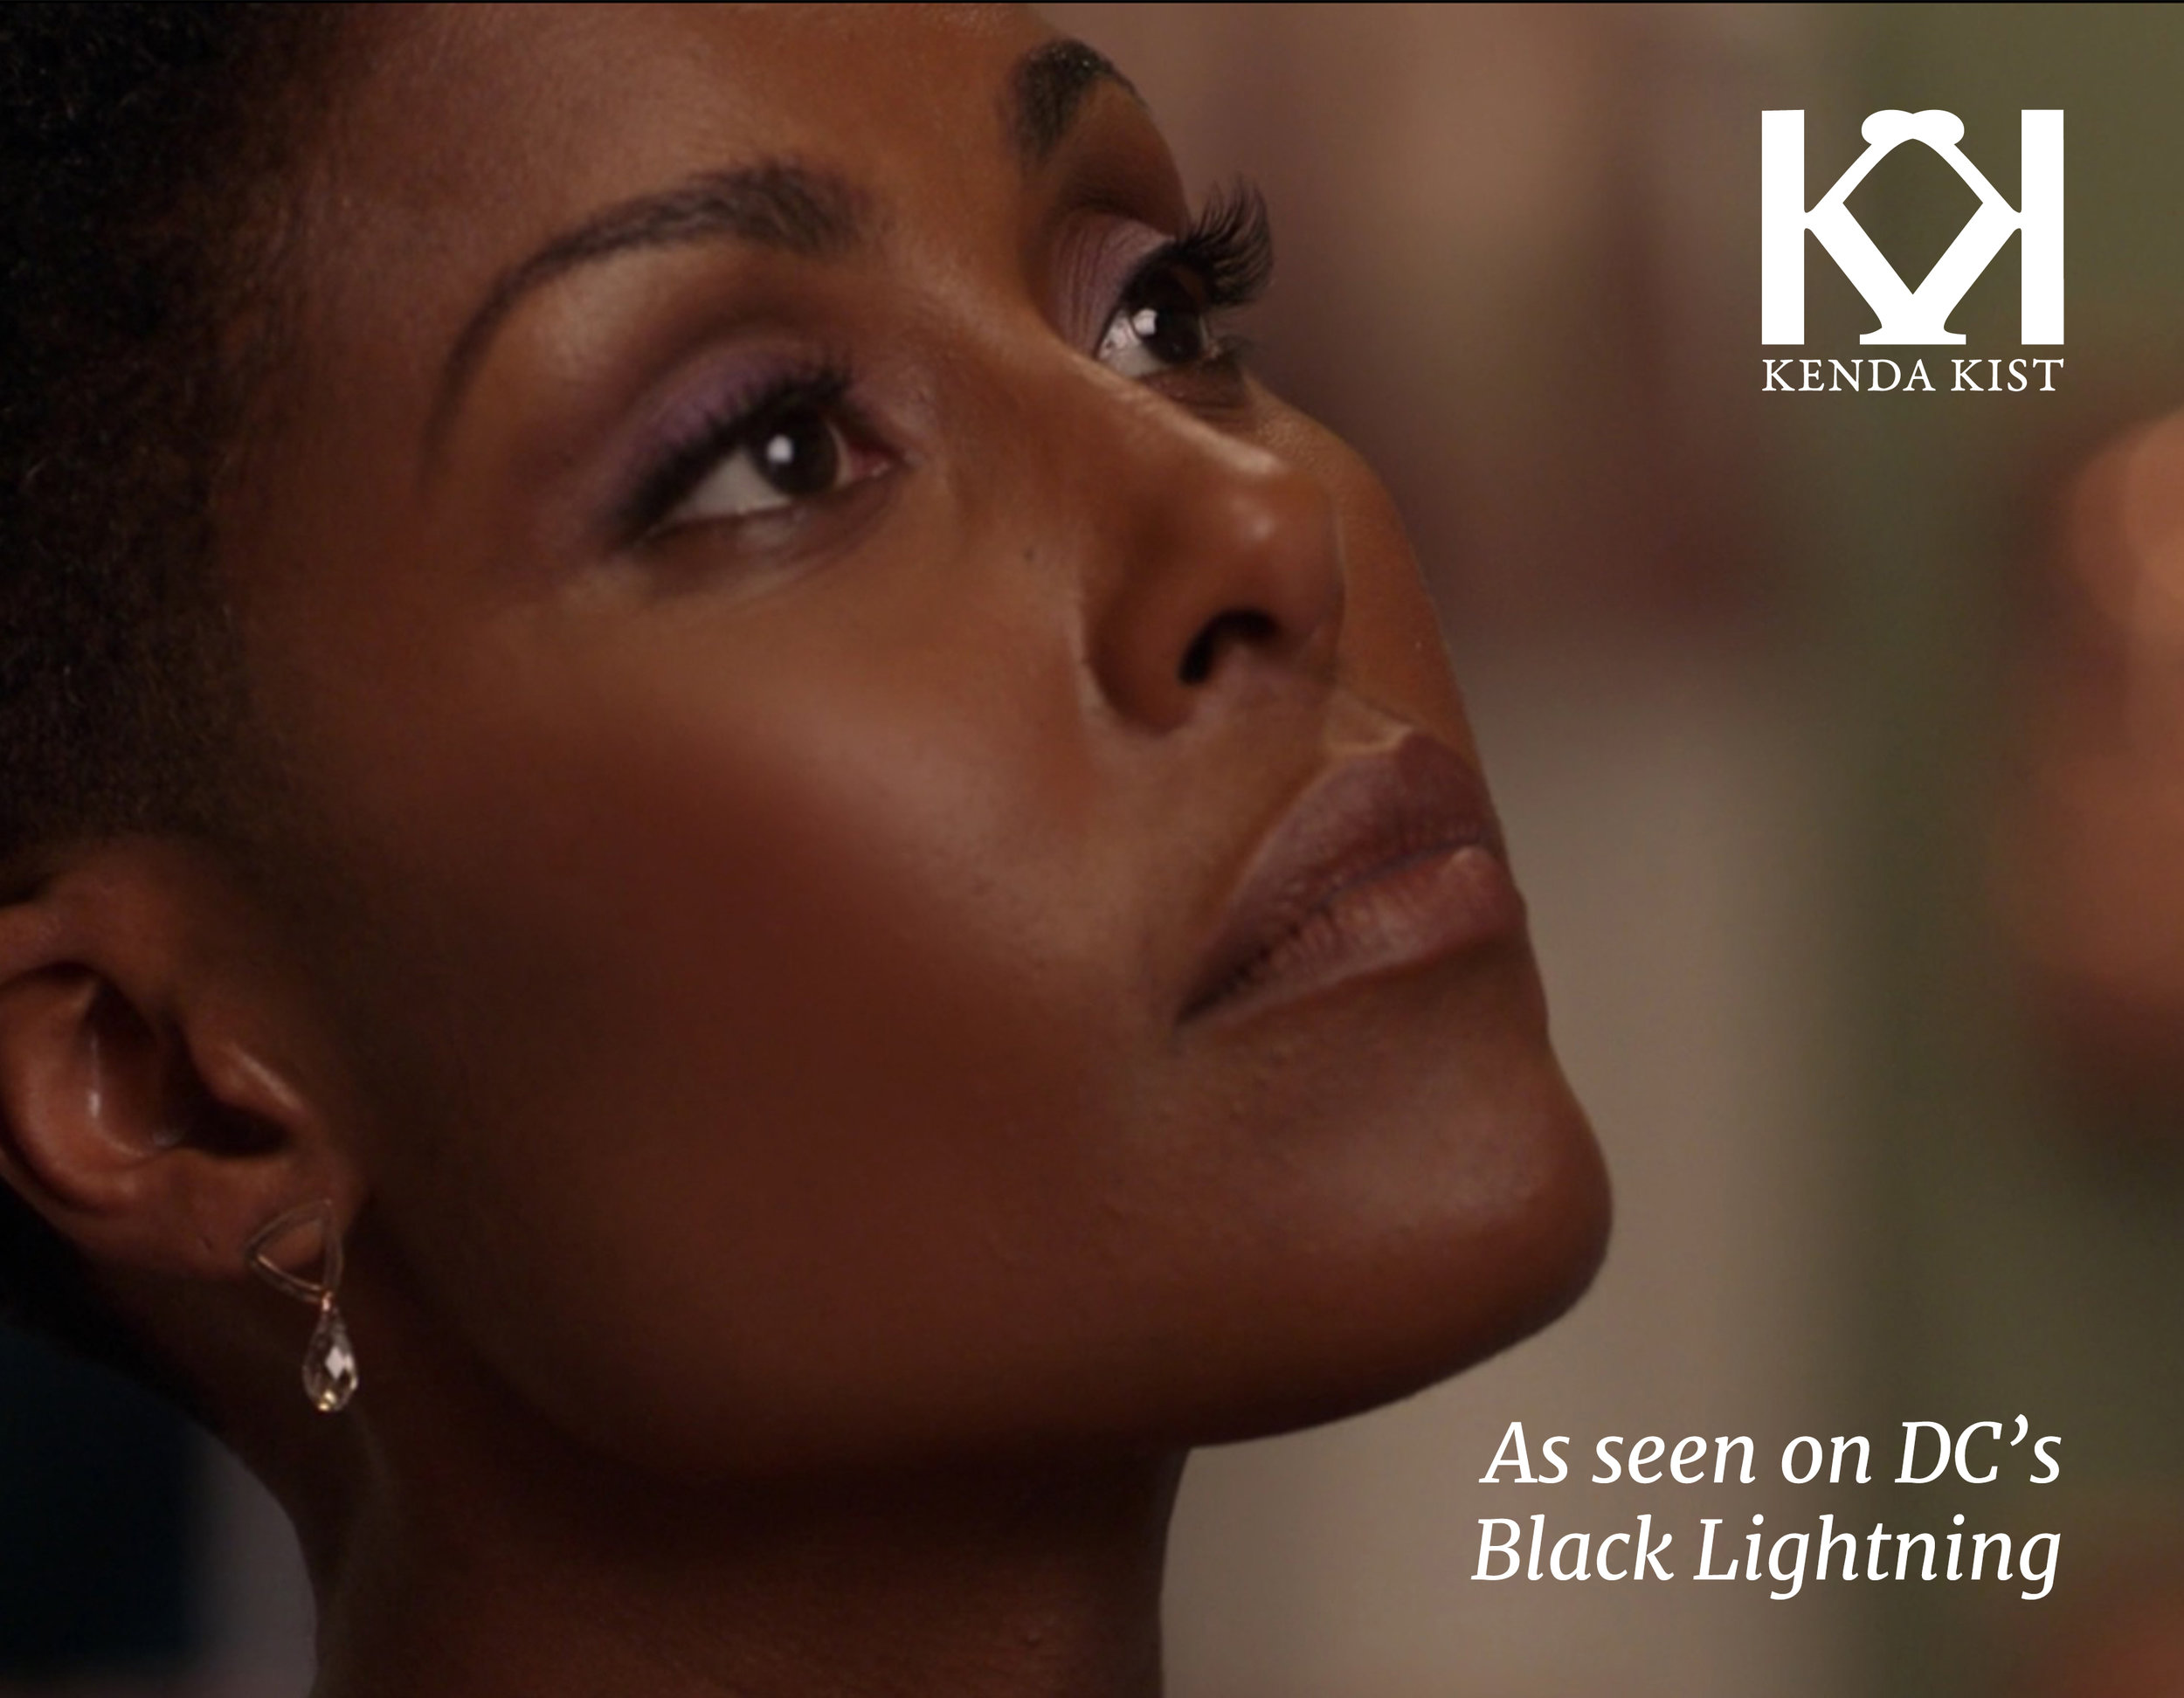 Black Lightning - Look for Kenda Kist Jewelry on the show Black Lightning!